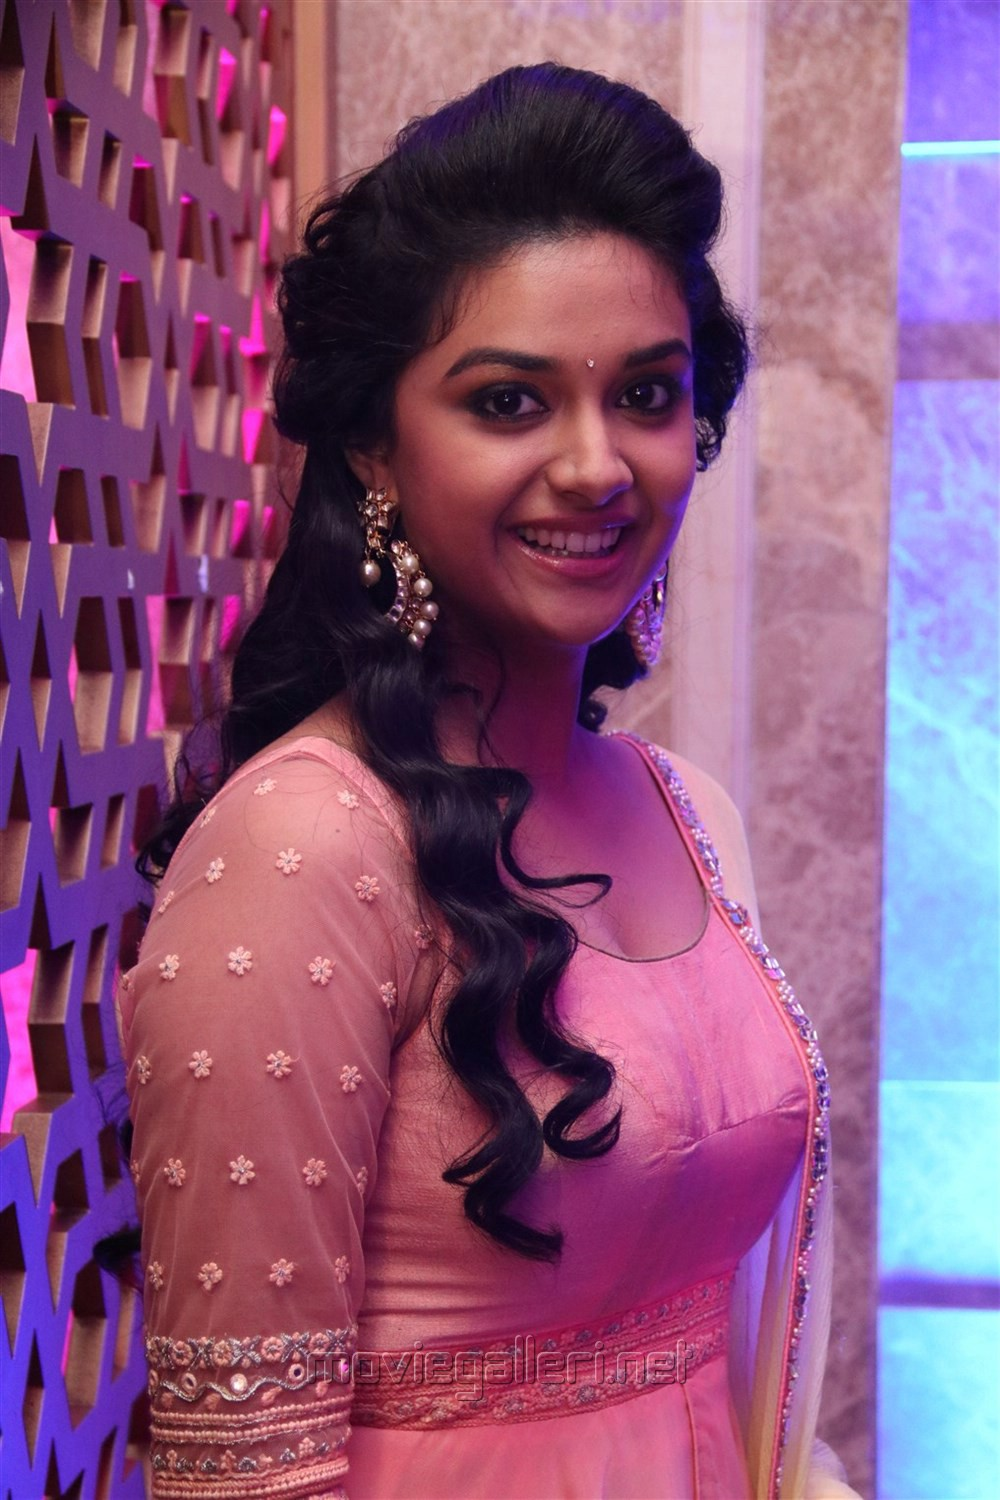 Keerthy Suresh latest photos from Remo track launch - Mallufun.com